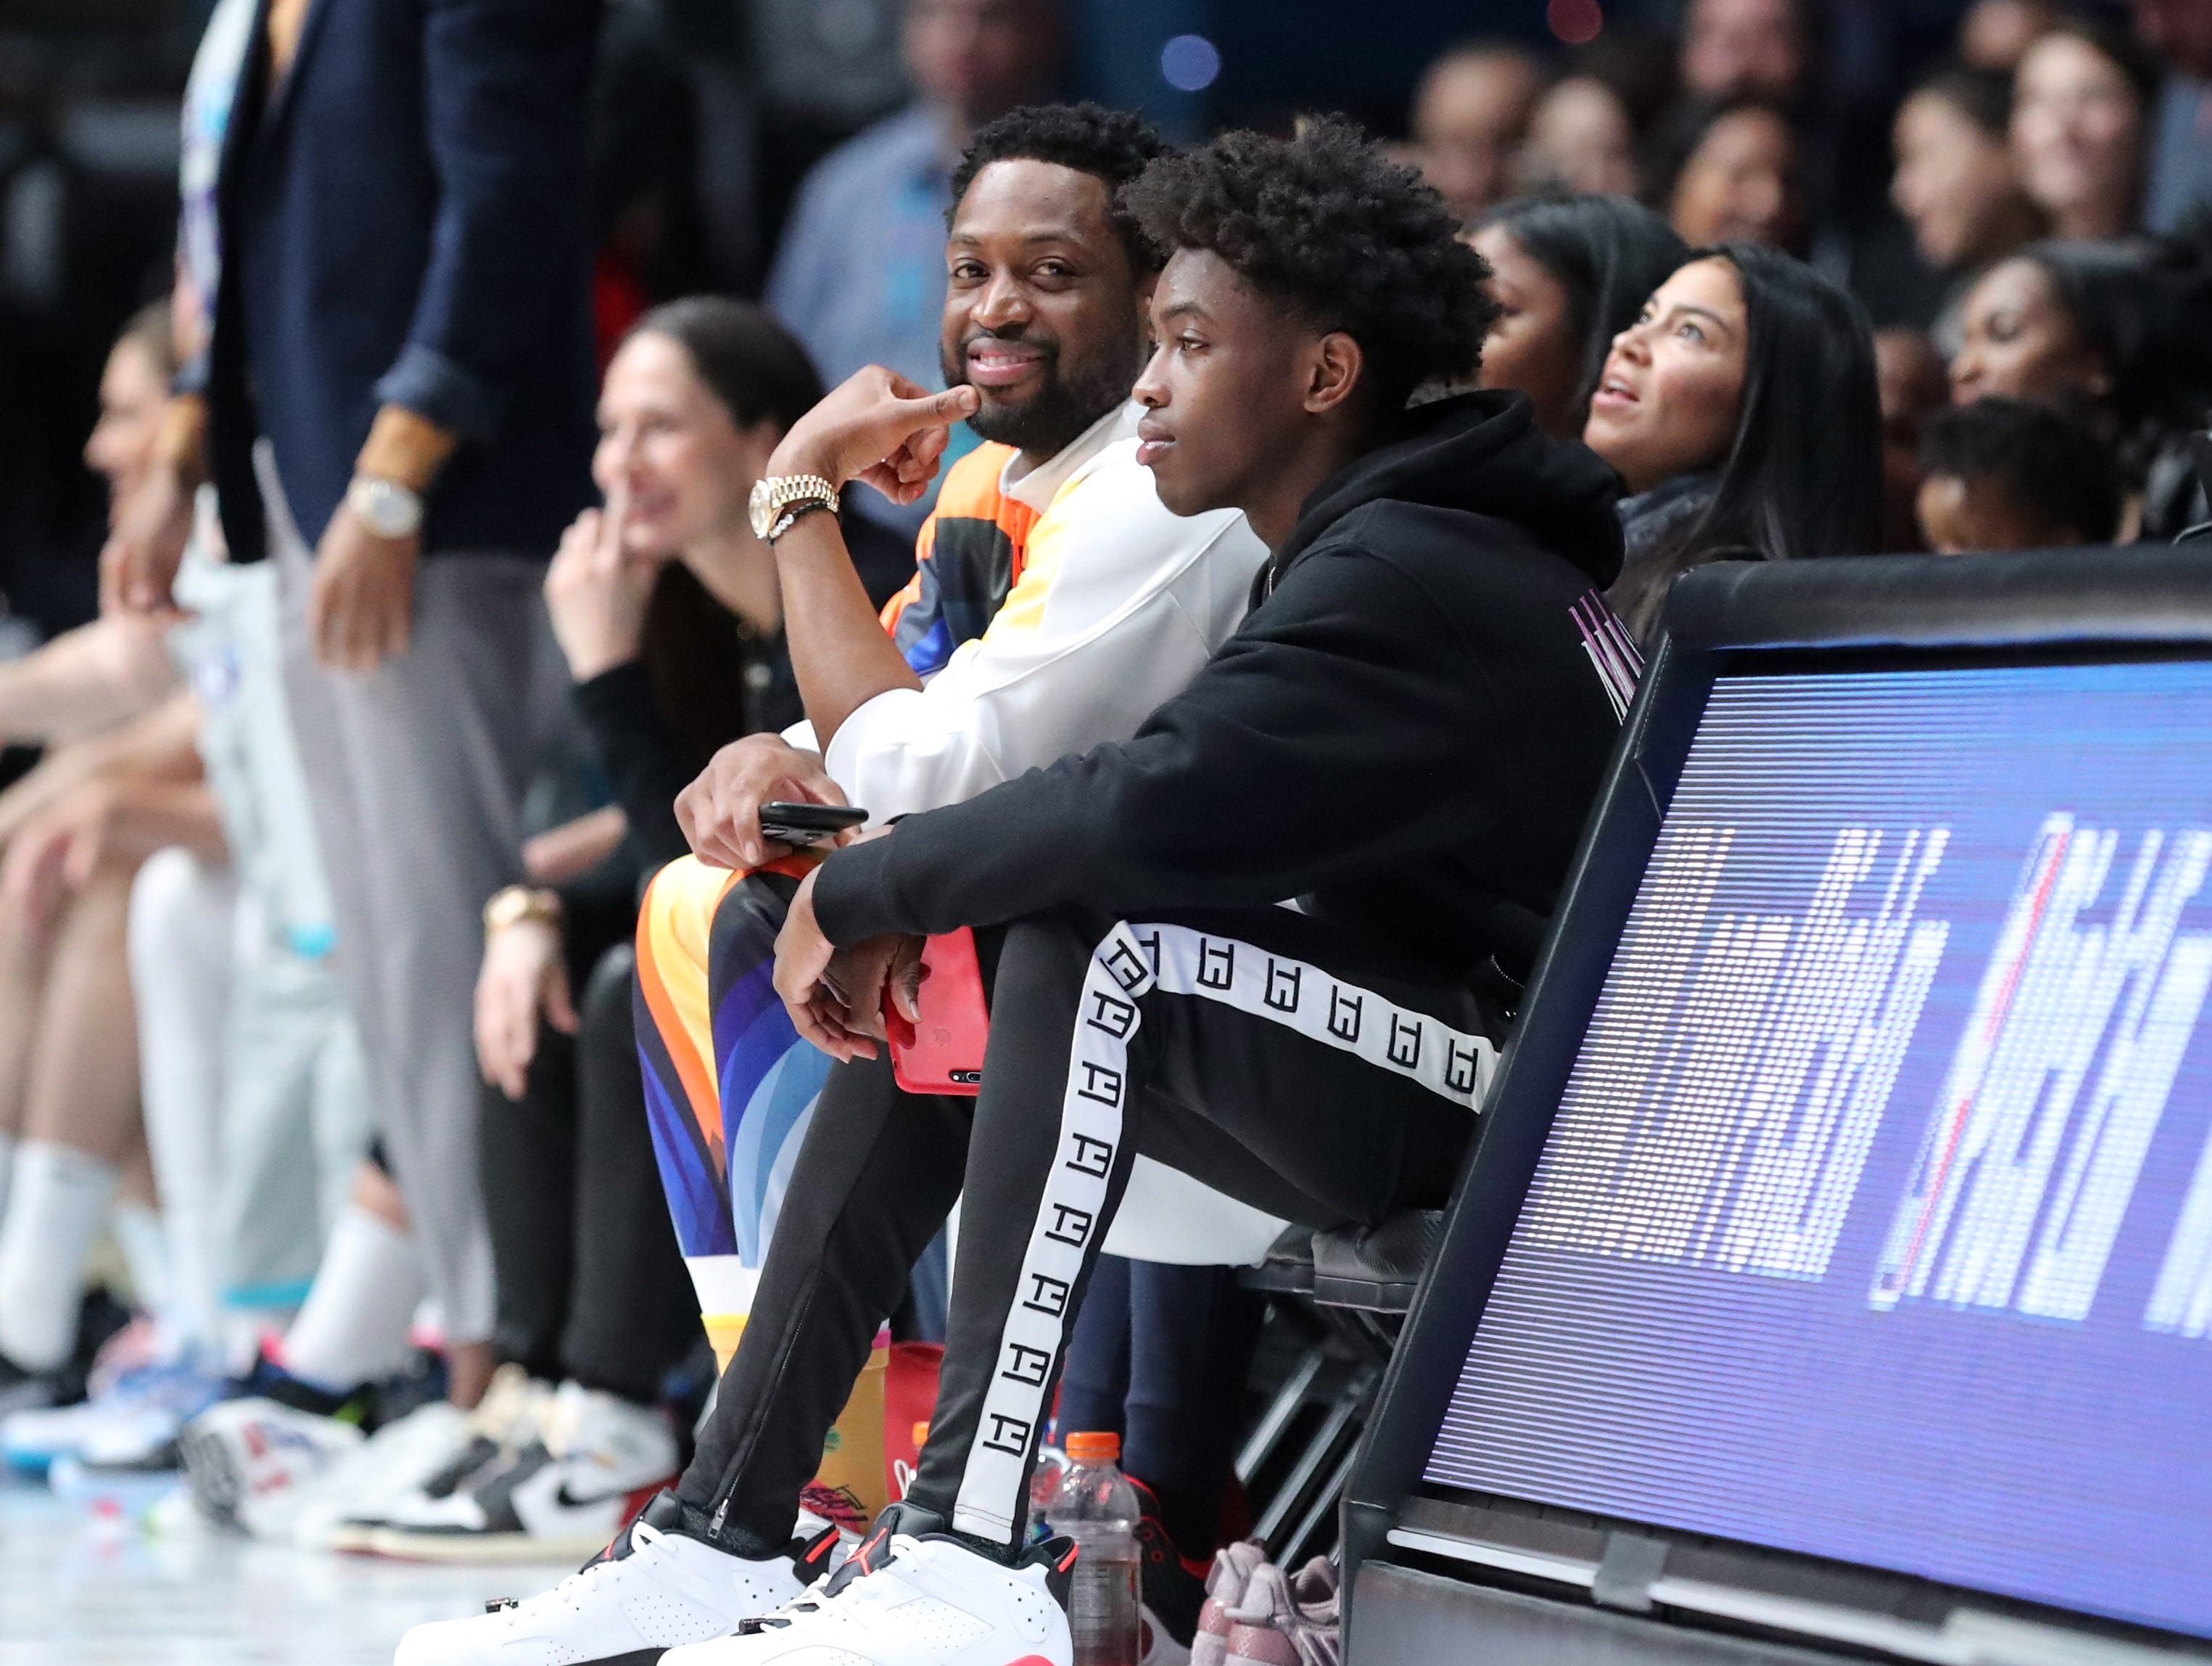 Miami Heat guard Dwyane Wade sits on the sidelines of the Celebrity Game.